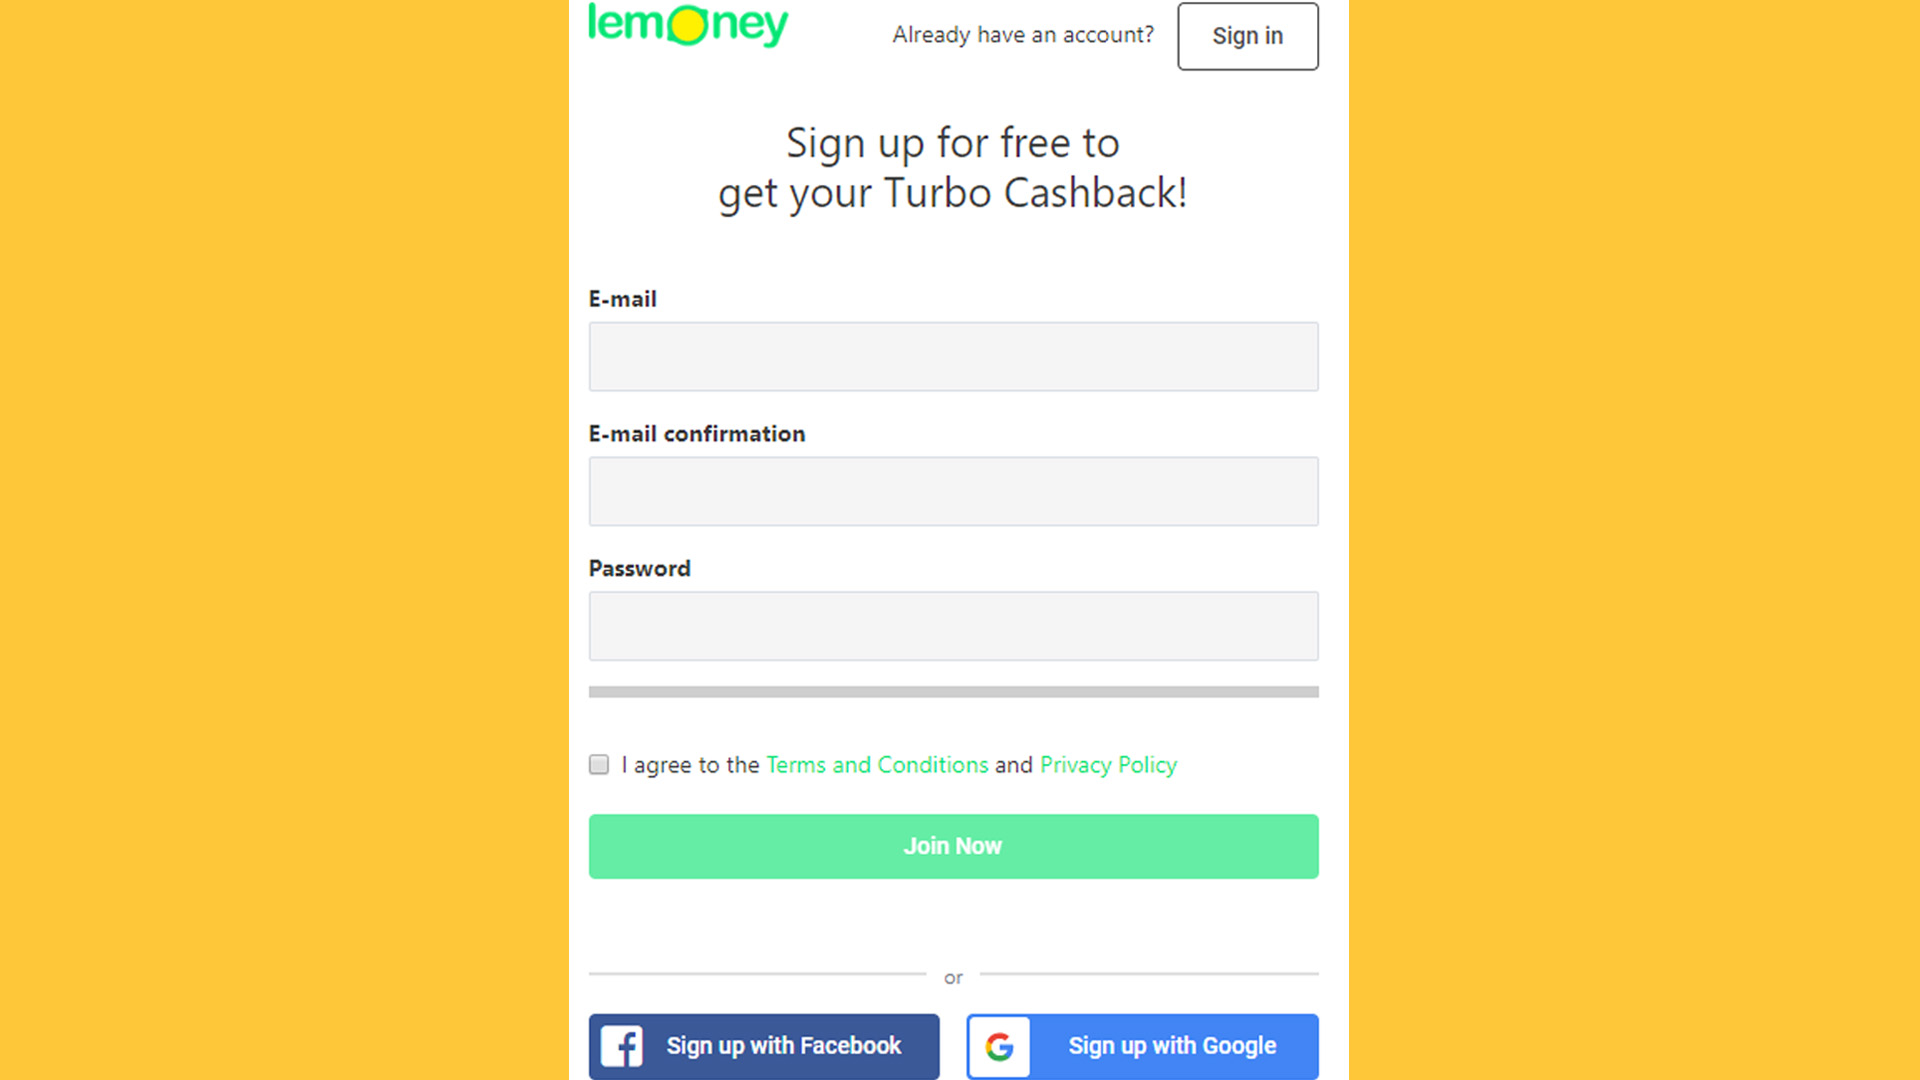 Subscribe To Lemoney And Be A One Step Close To The Highest Cashback Deals